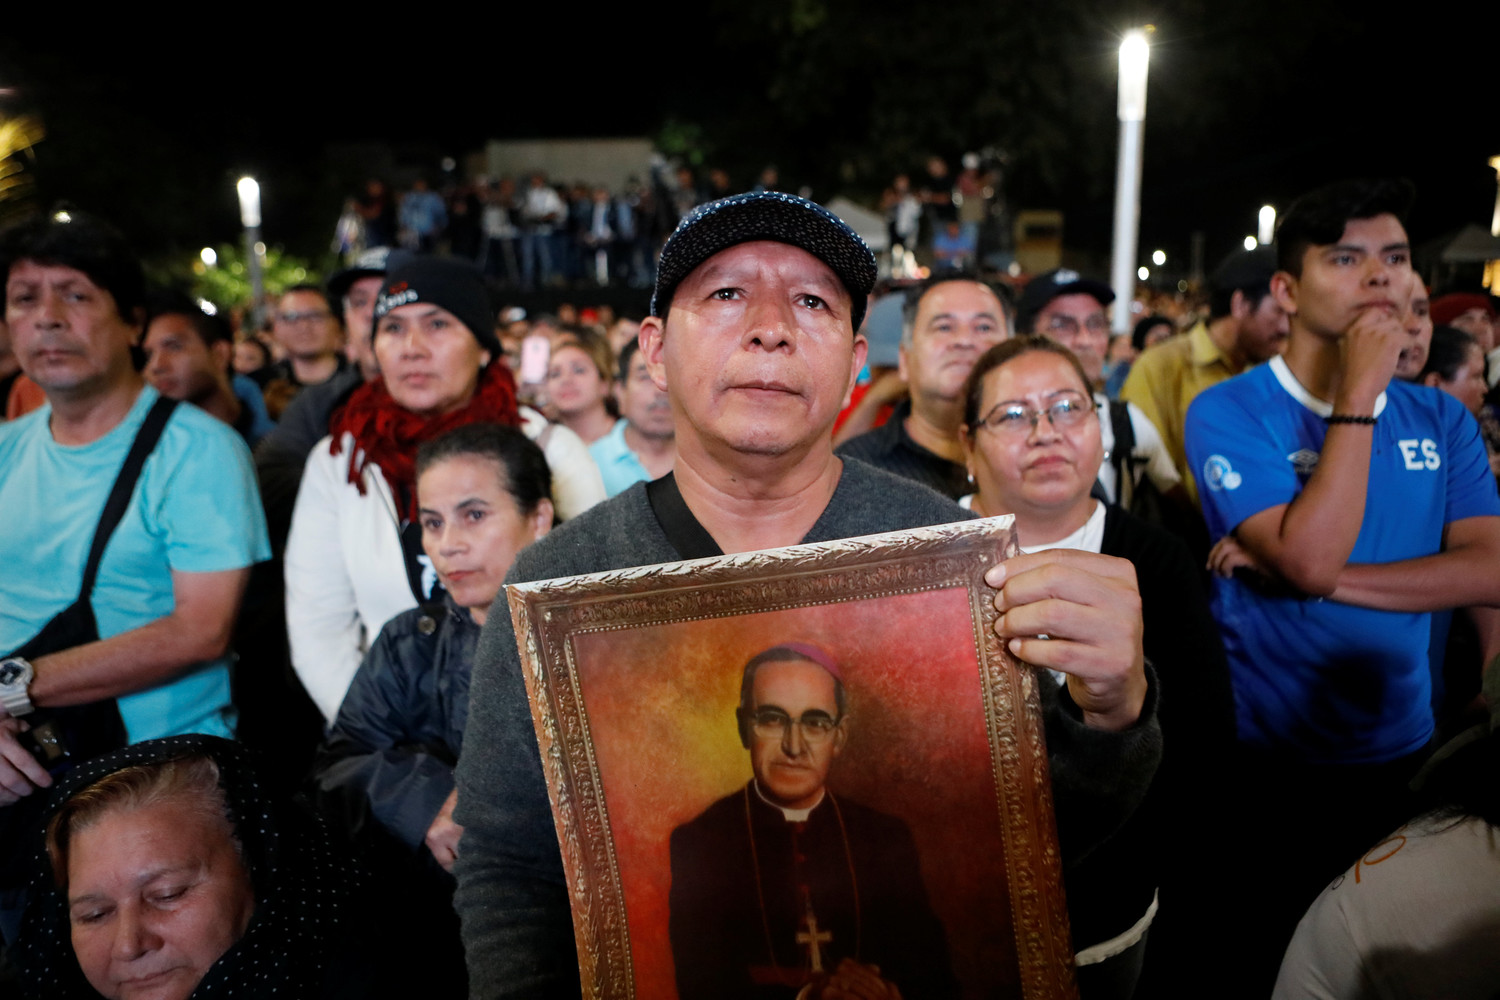 People attend a ceremony at Gerardo Barrios Square in San Salvador, El Salvador, Oct. 14, as Pope Francis celebrates the canonization Mass for St. Oscar Romero and six other new saints in St. Peter's Square at the Vatican.